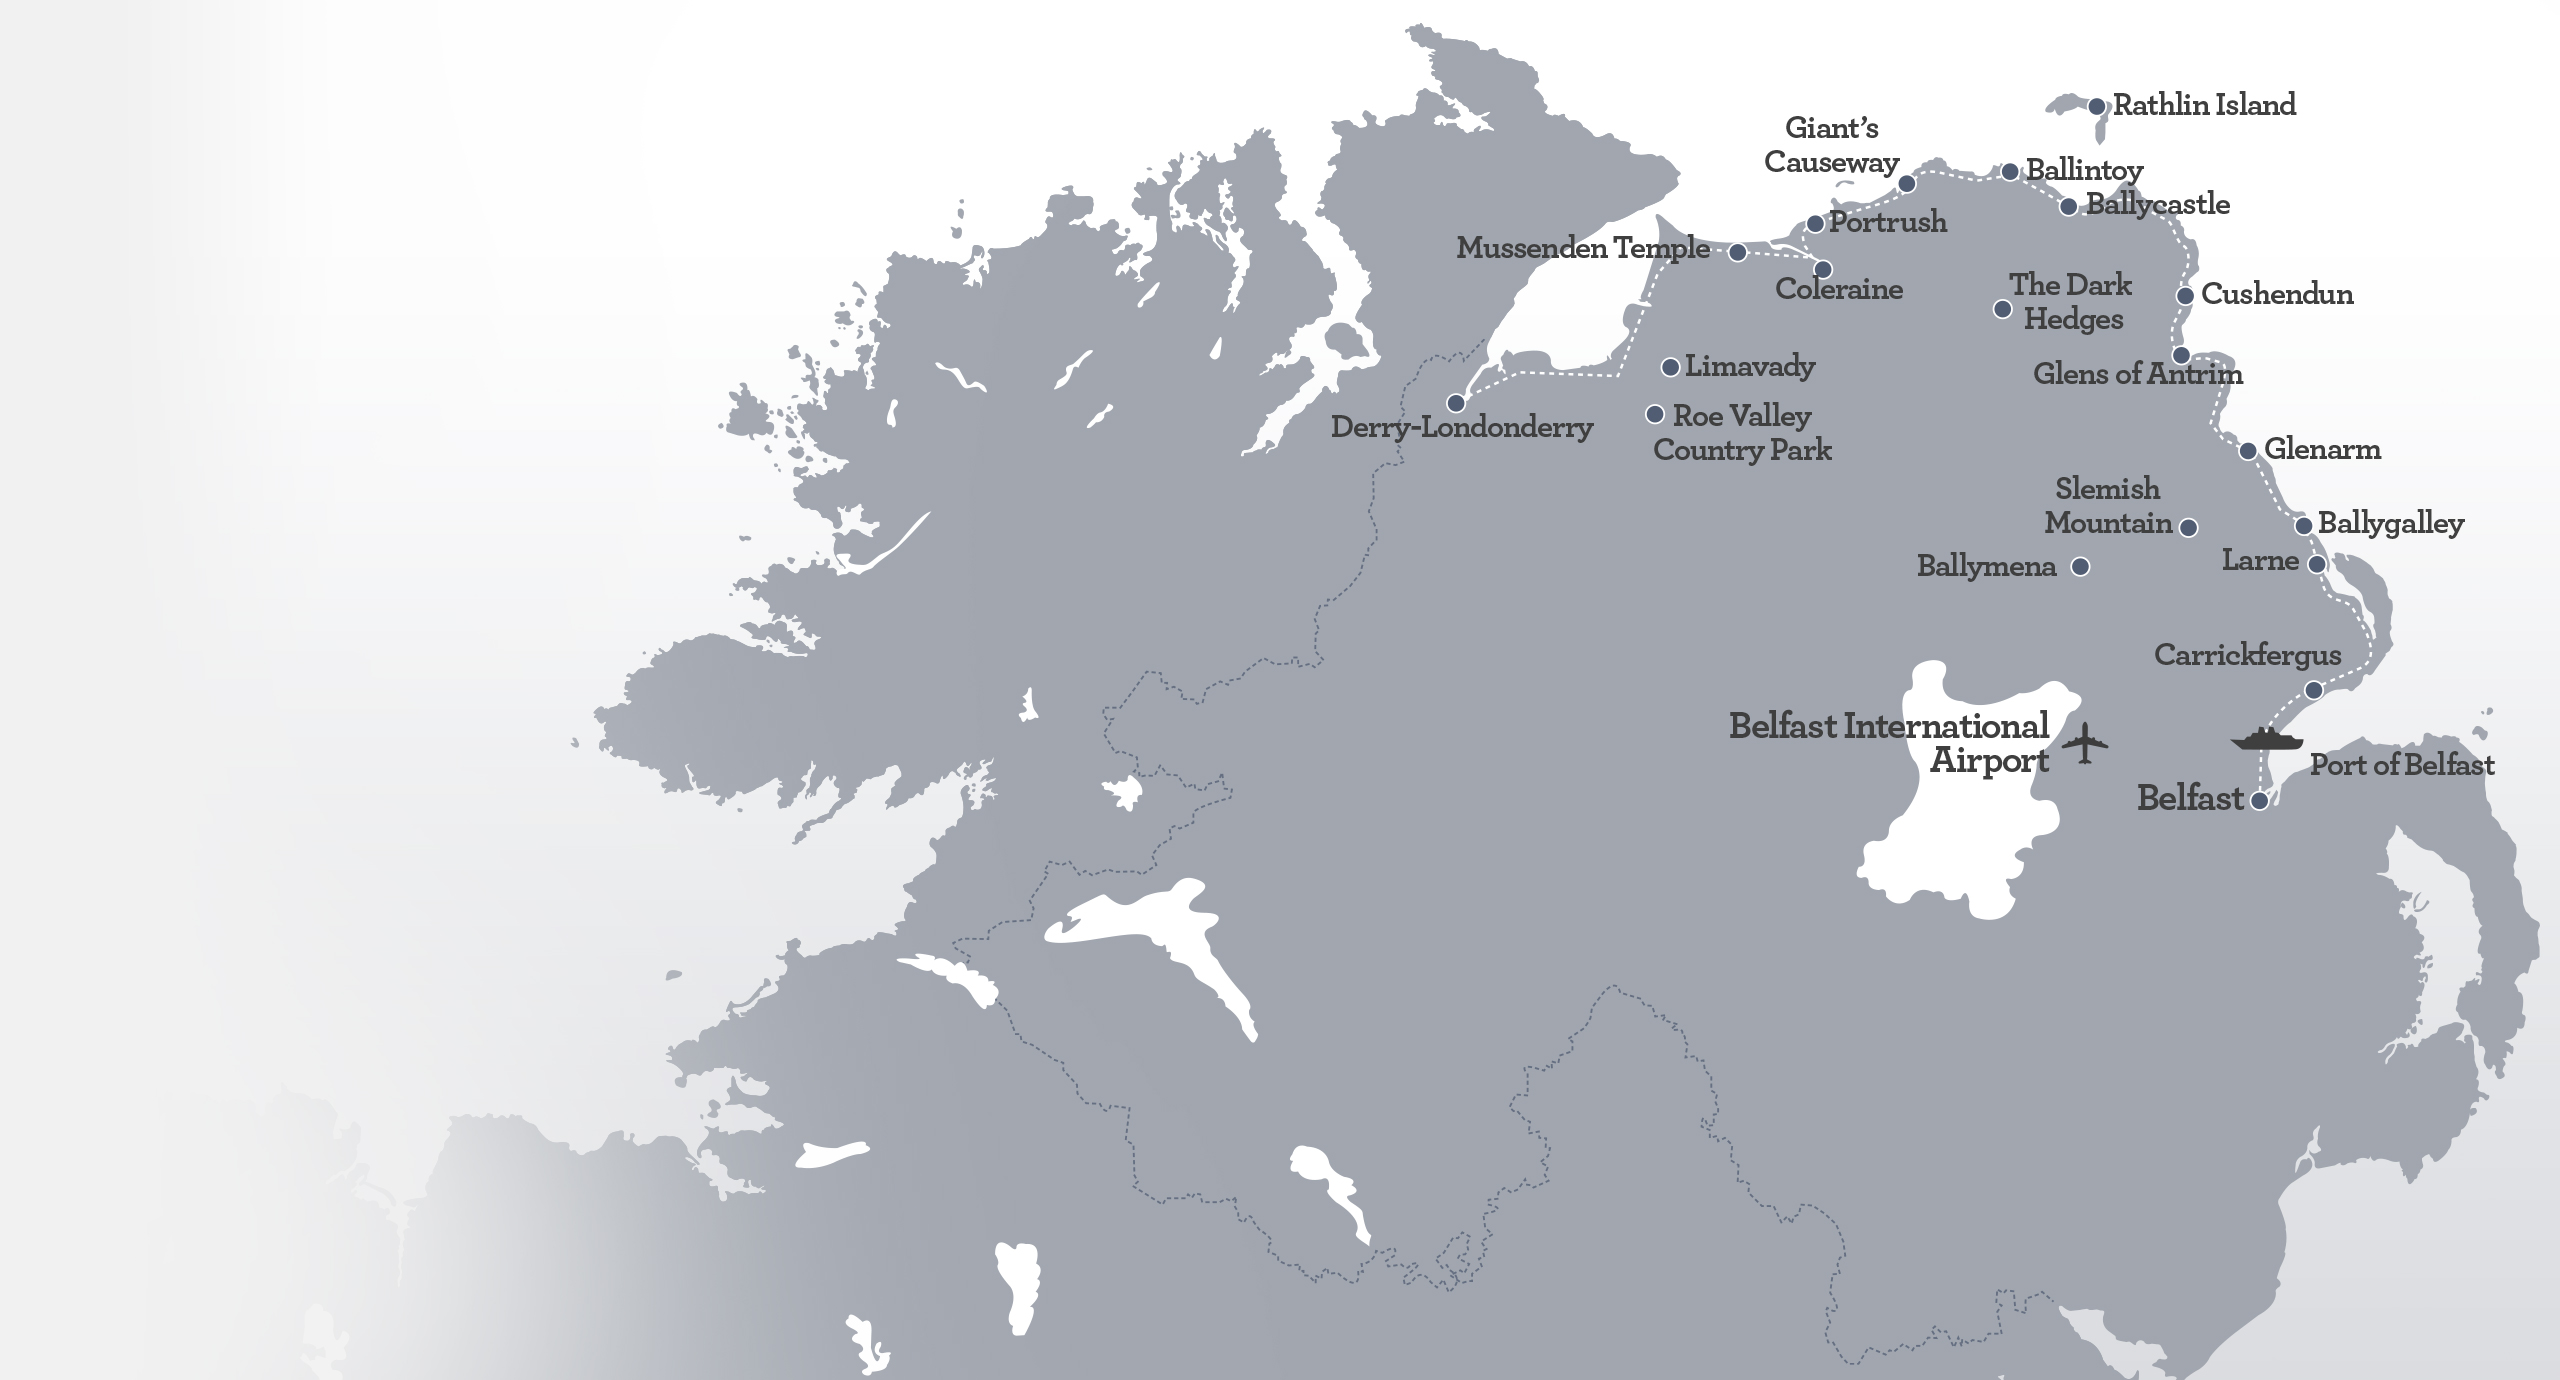 International Airports In Ireland Map.The Causeway Coastline Some Of Irelands Most Incredible Scenery